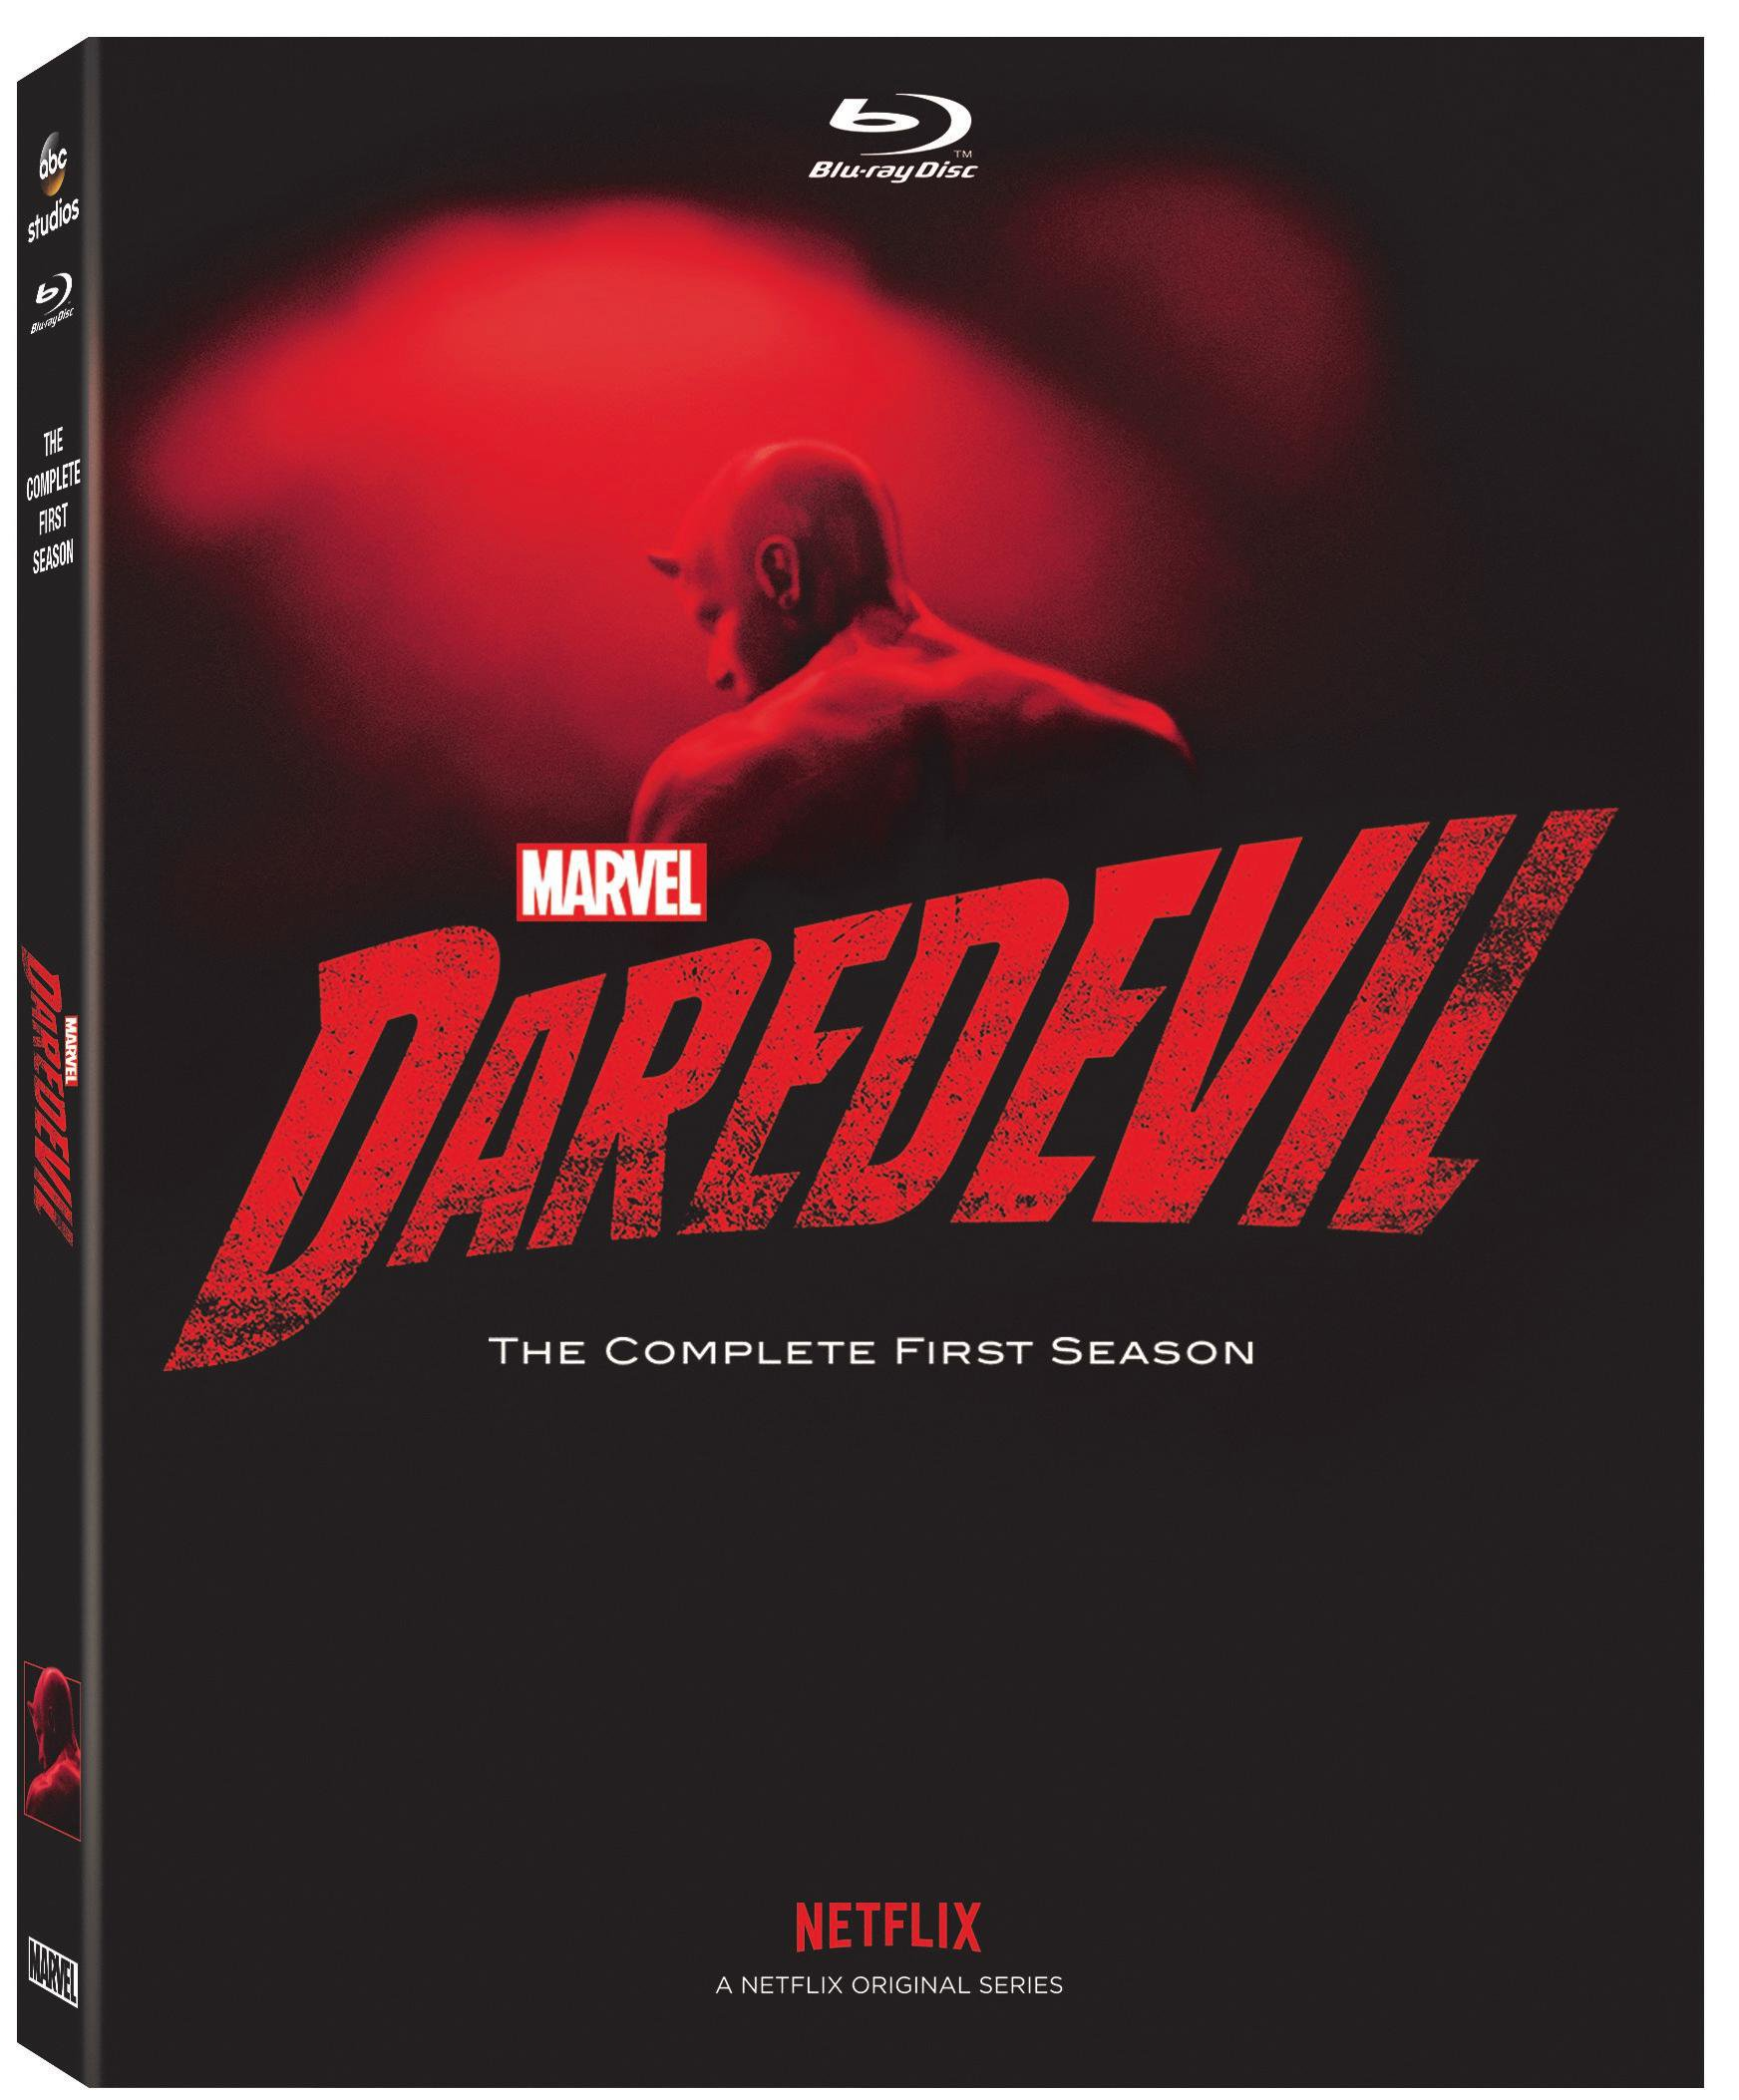 Marvel S Daredevil The Complete First Season Coming To